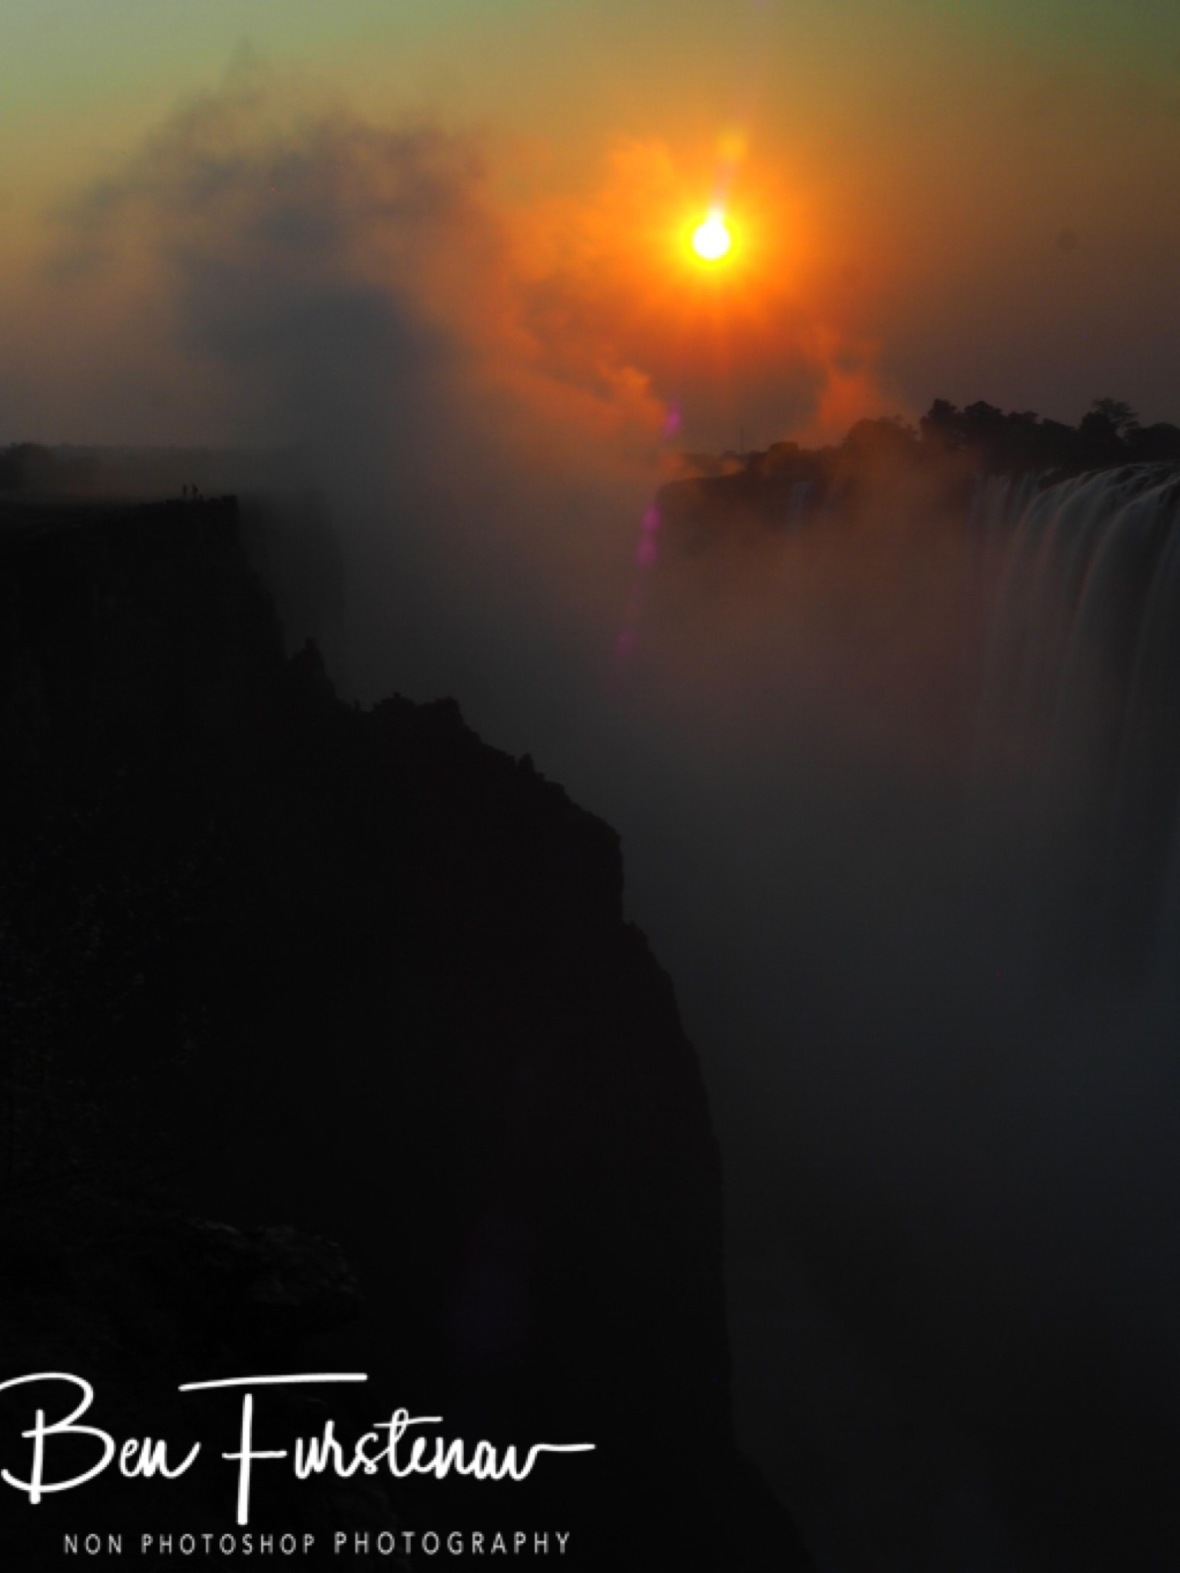 Steaming mist rising up the sun, Victoria Falls, Zambia